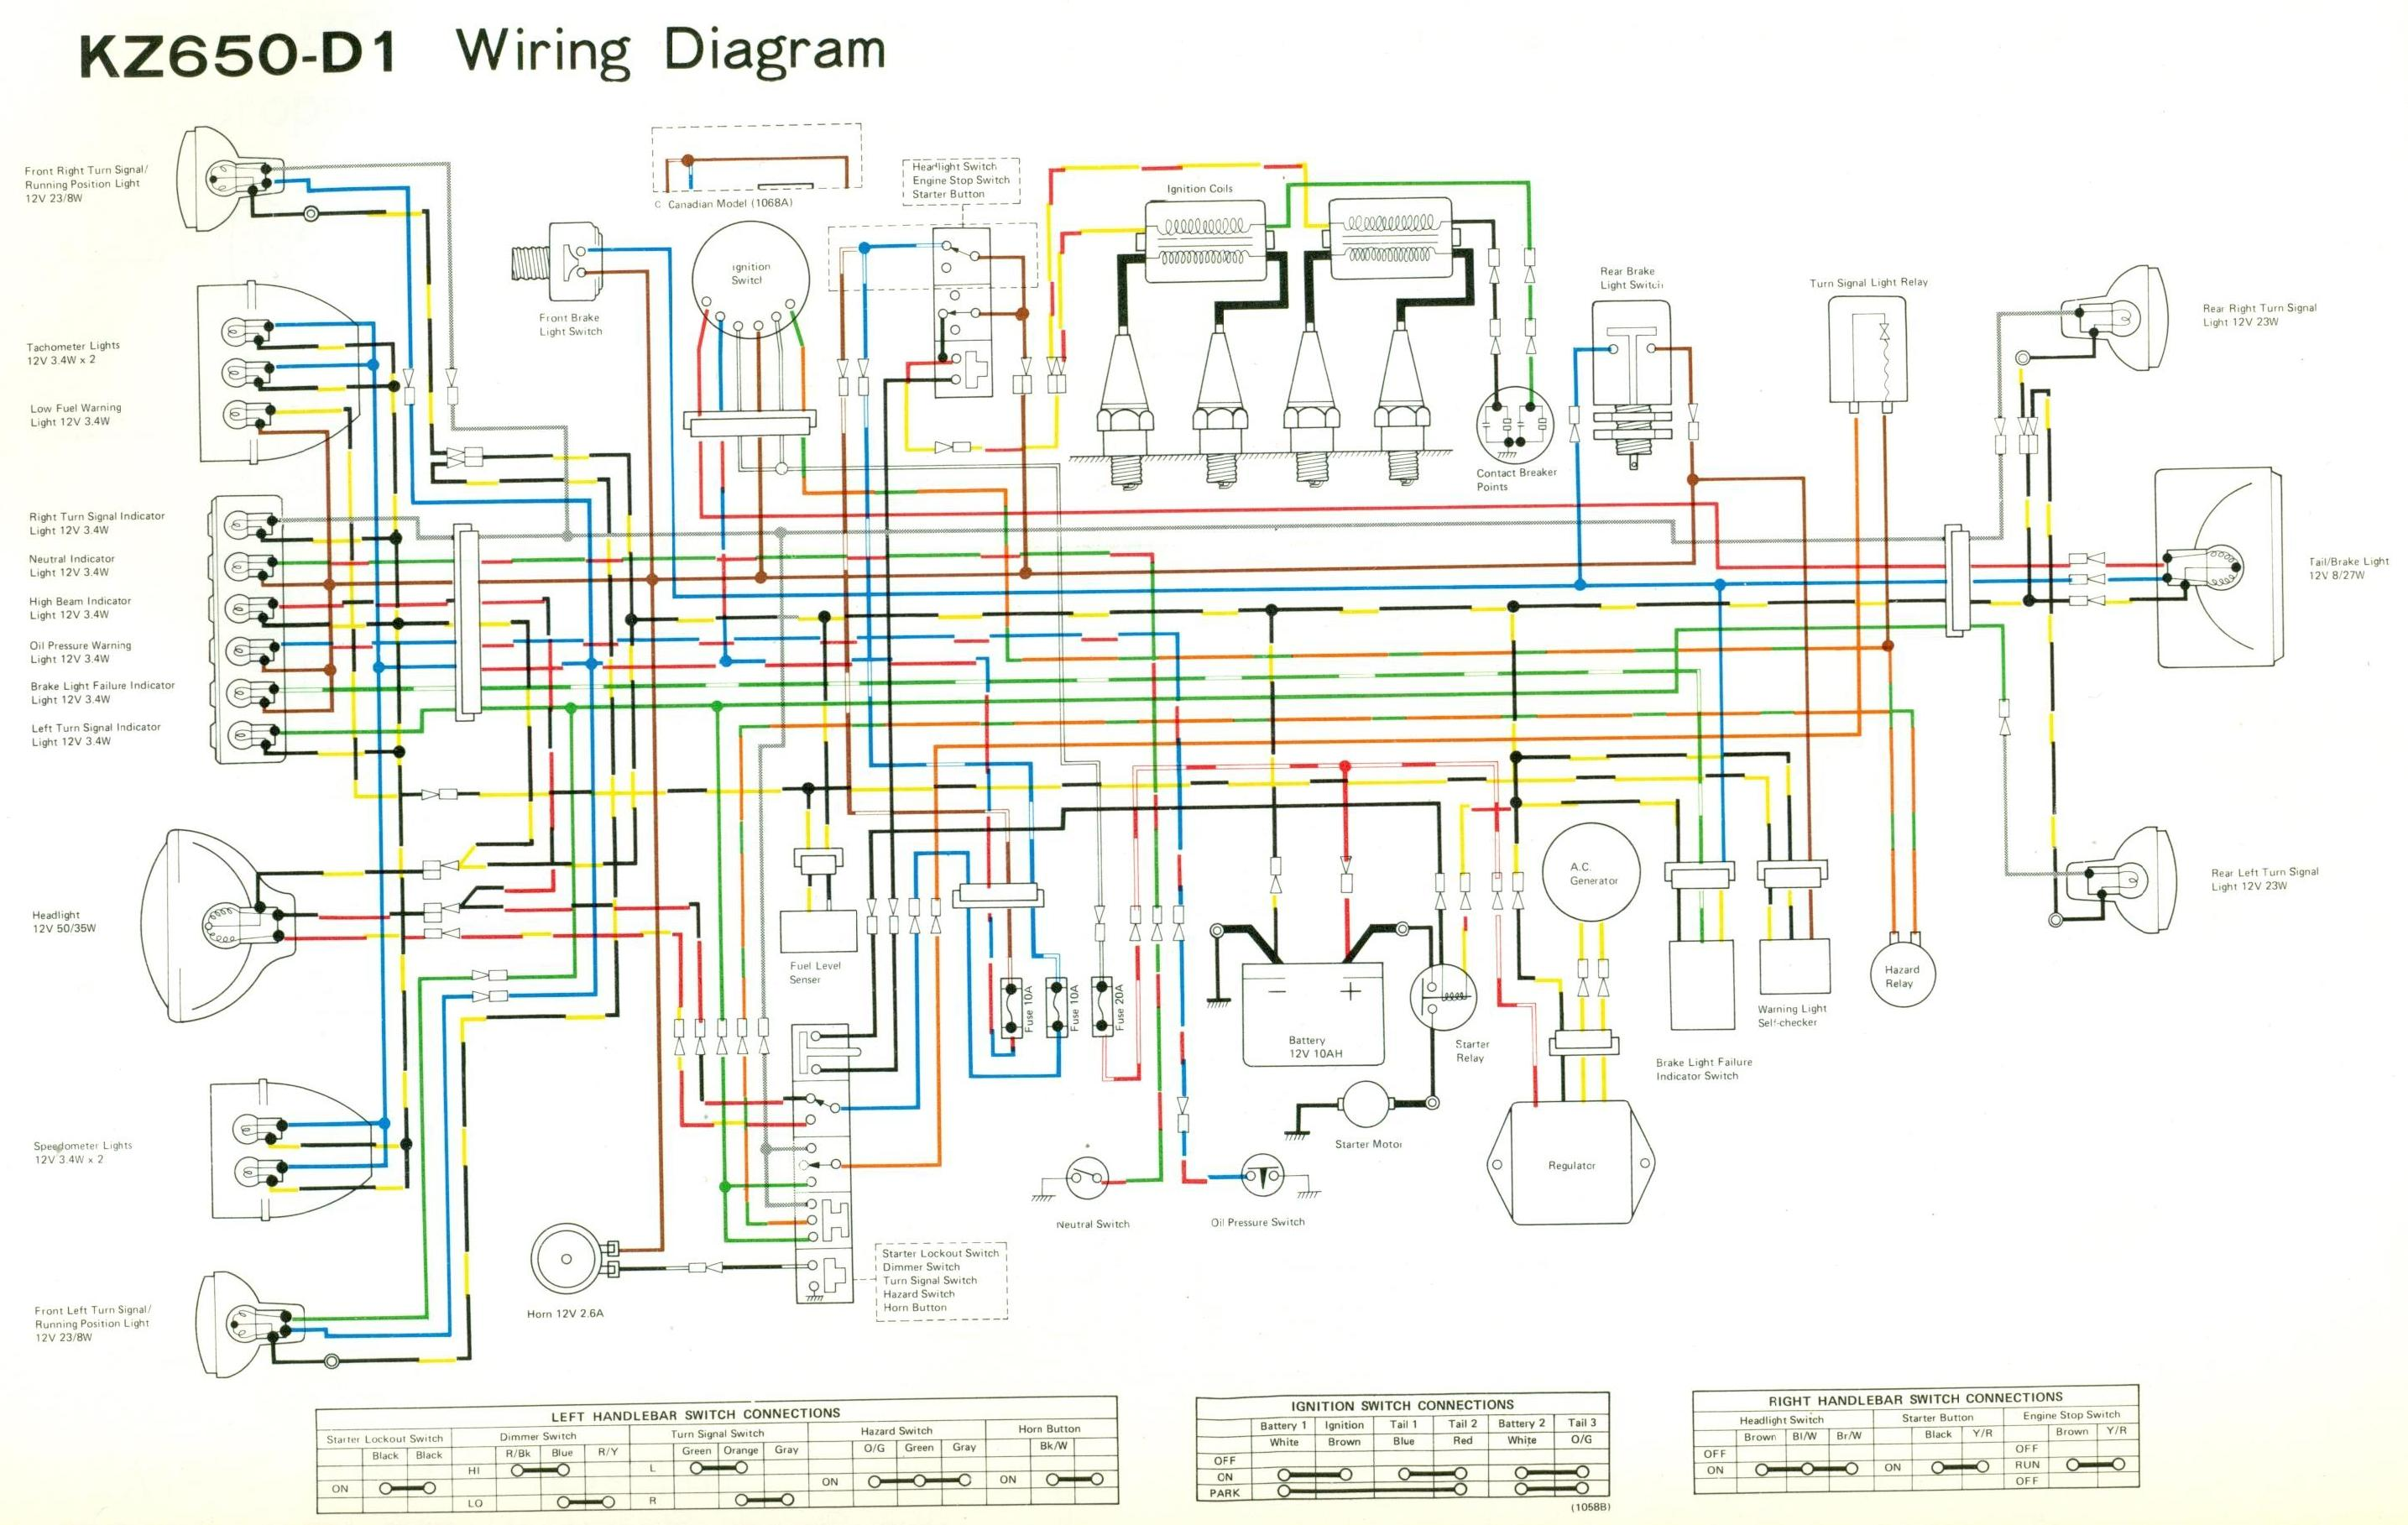 kz650 wiring diagram wiring diagram for light switch u2022 rh lomond tw